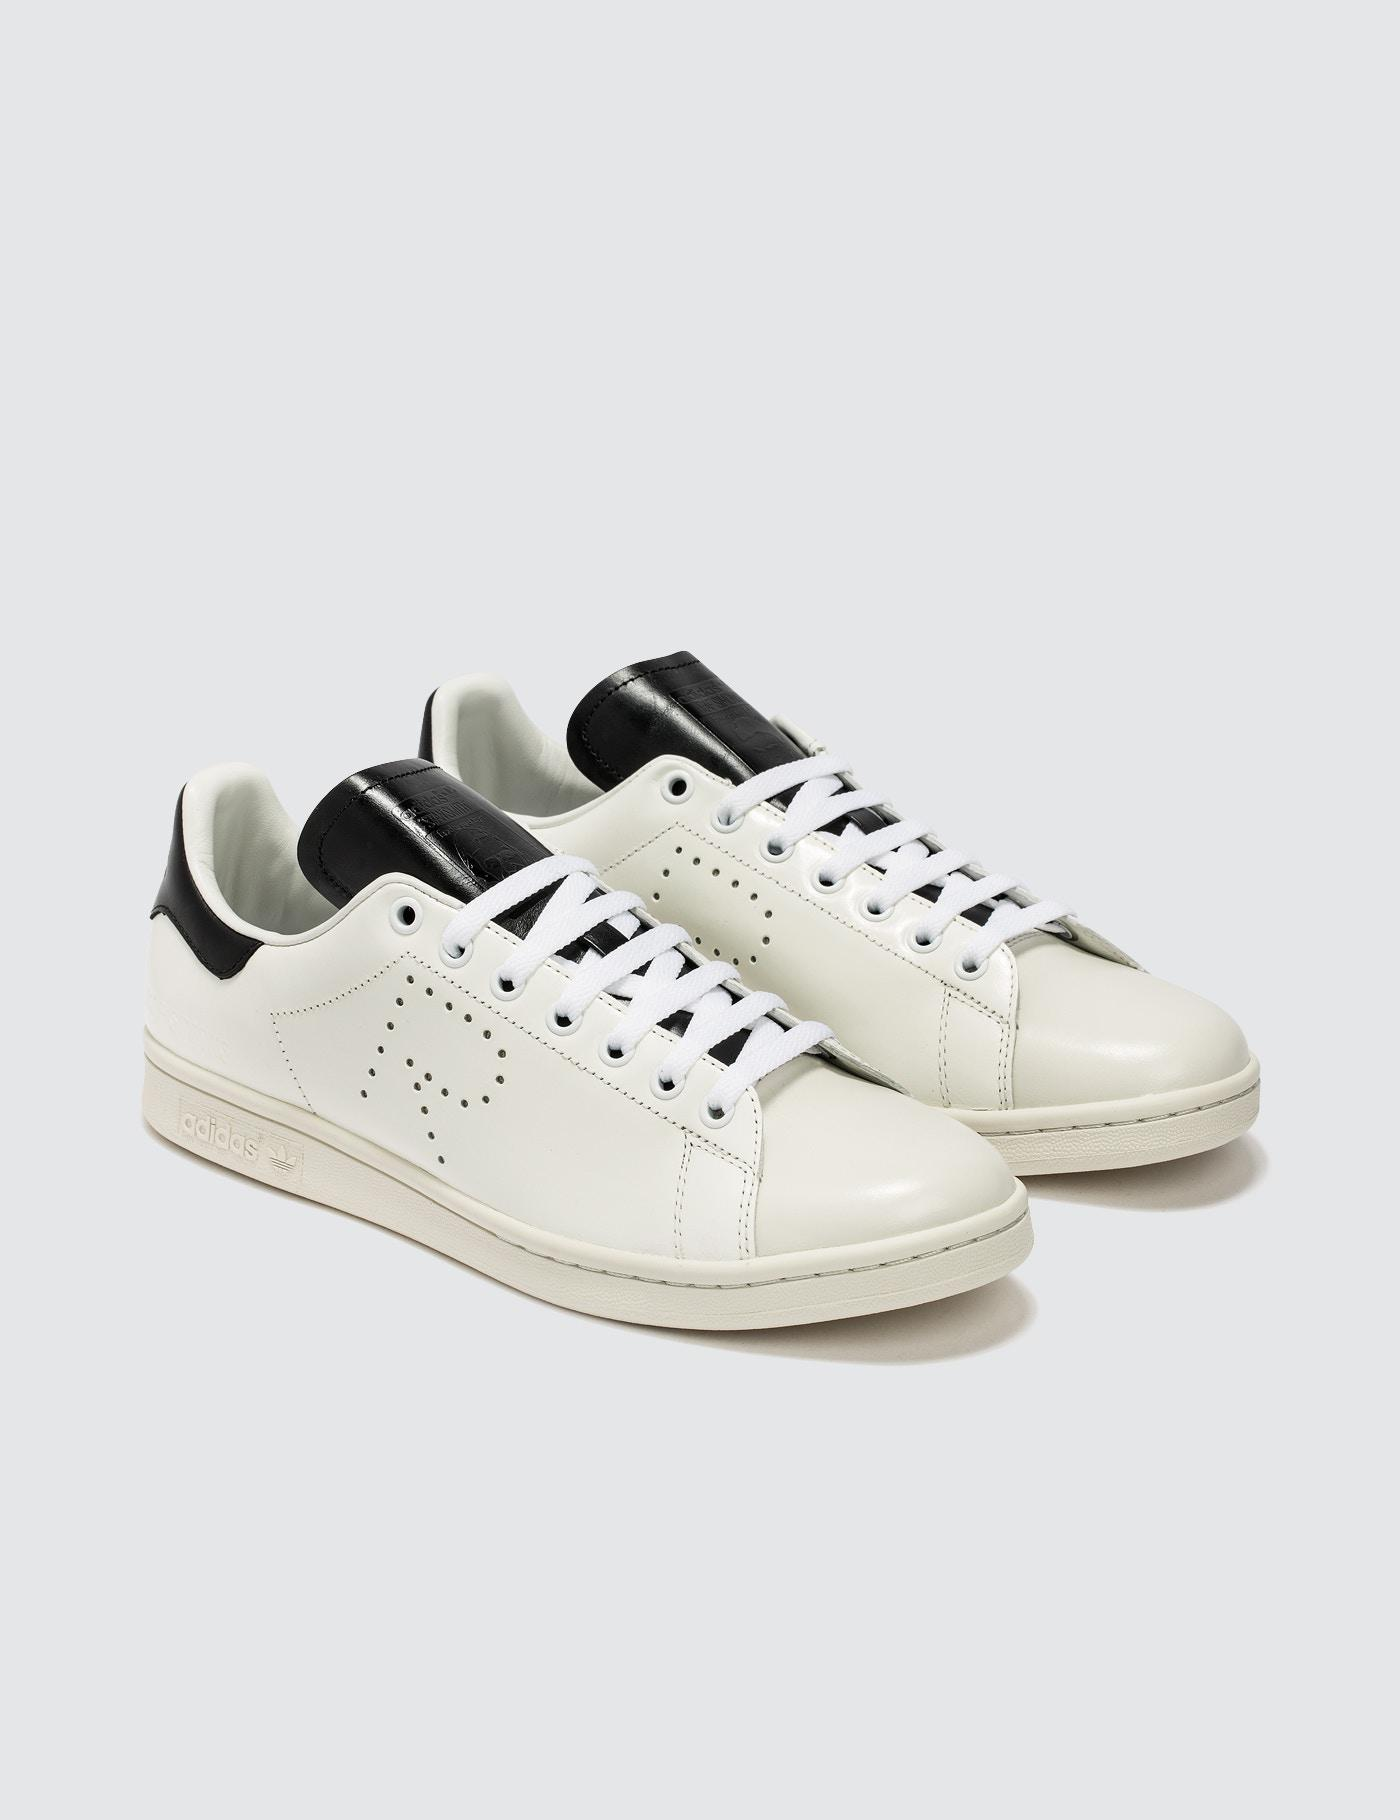 adidas By Raf Simons Leather Adidas By Raf Simons Stan Smith in White for Men